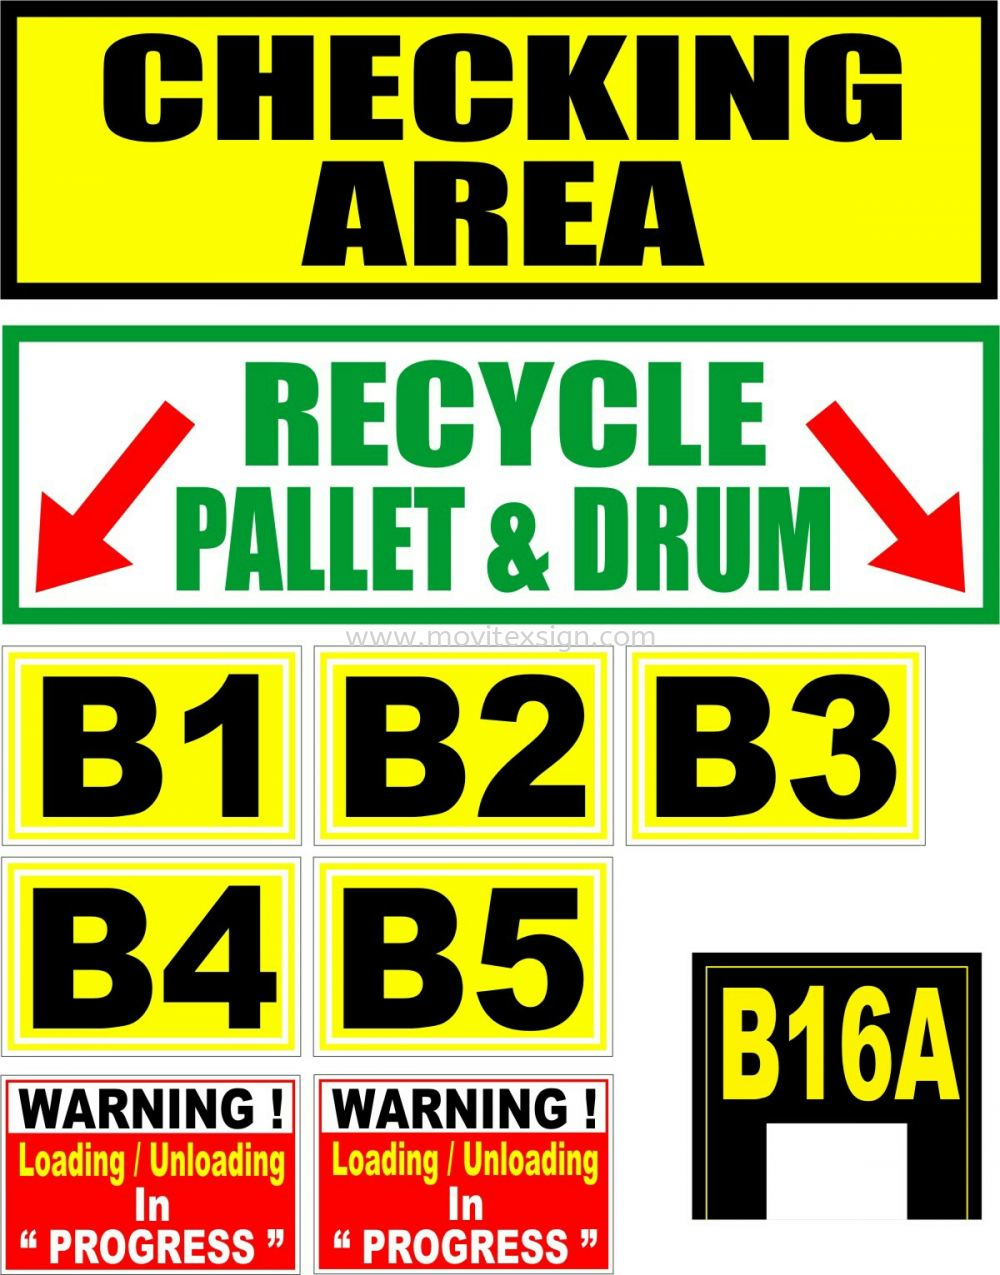 Productions n Bar codding sign/Storrage area  Safety Sign Sample Industry Safety Sign and Symbols Image Johor Bahru (JB), Johor, Malaysia. Design, Supplier, Manufacturers, Suppliers   M-Movitexsign Advertising Art & Print Sdn Bhd